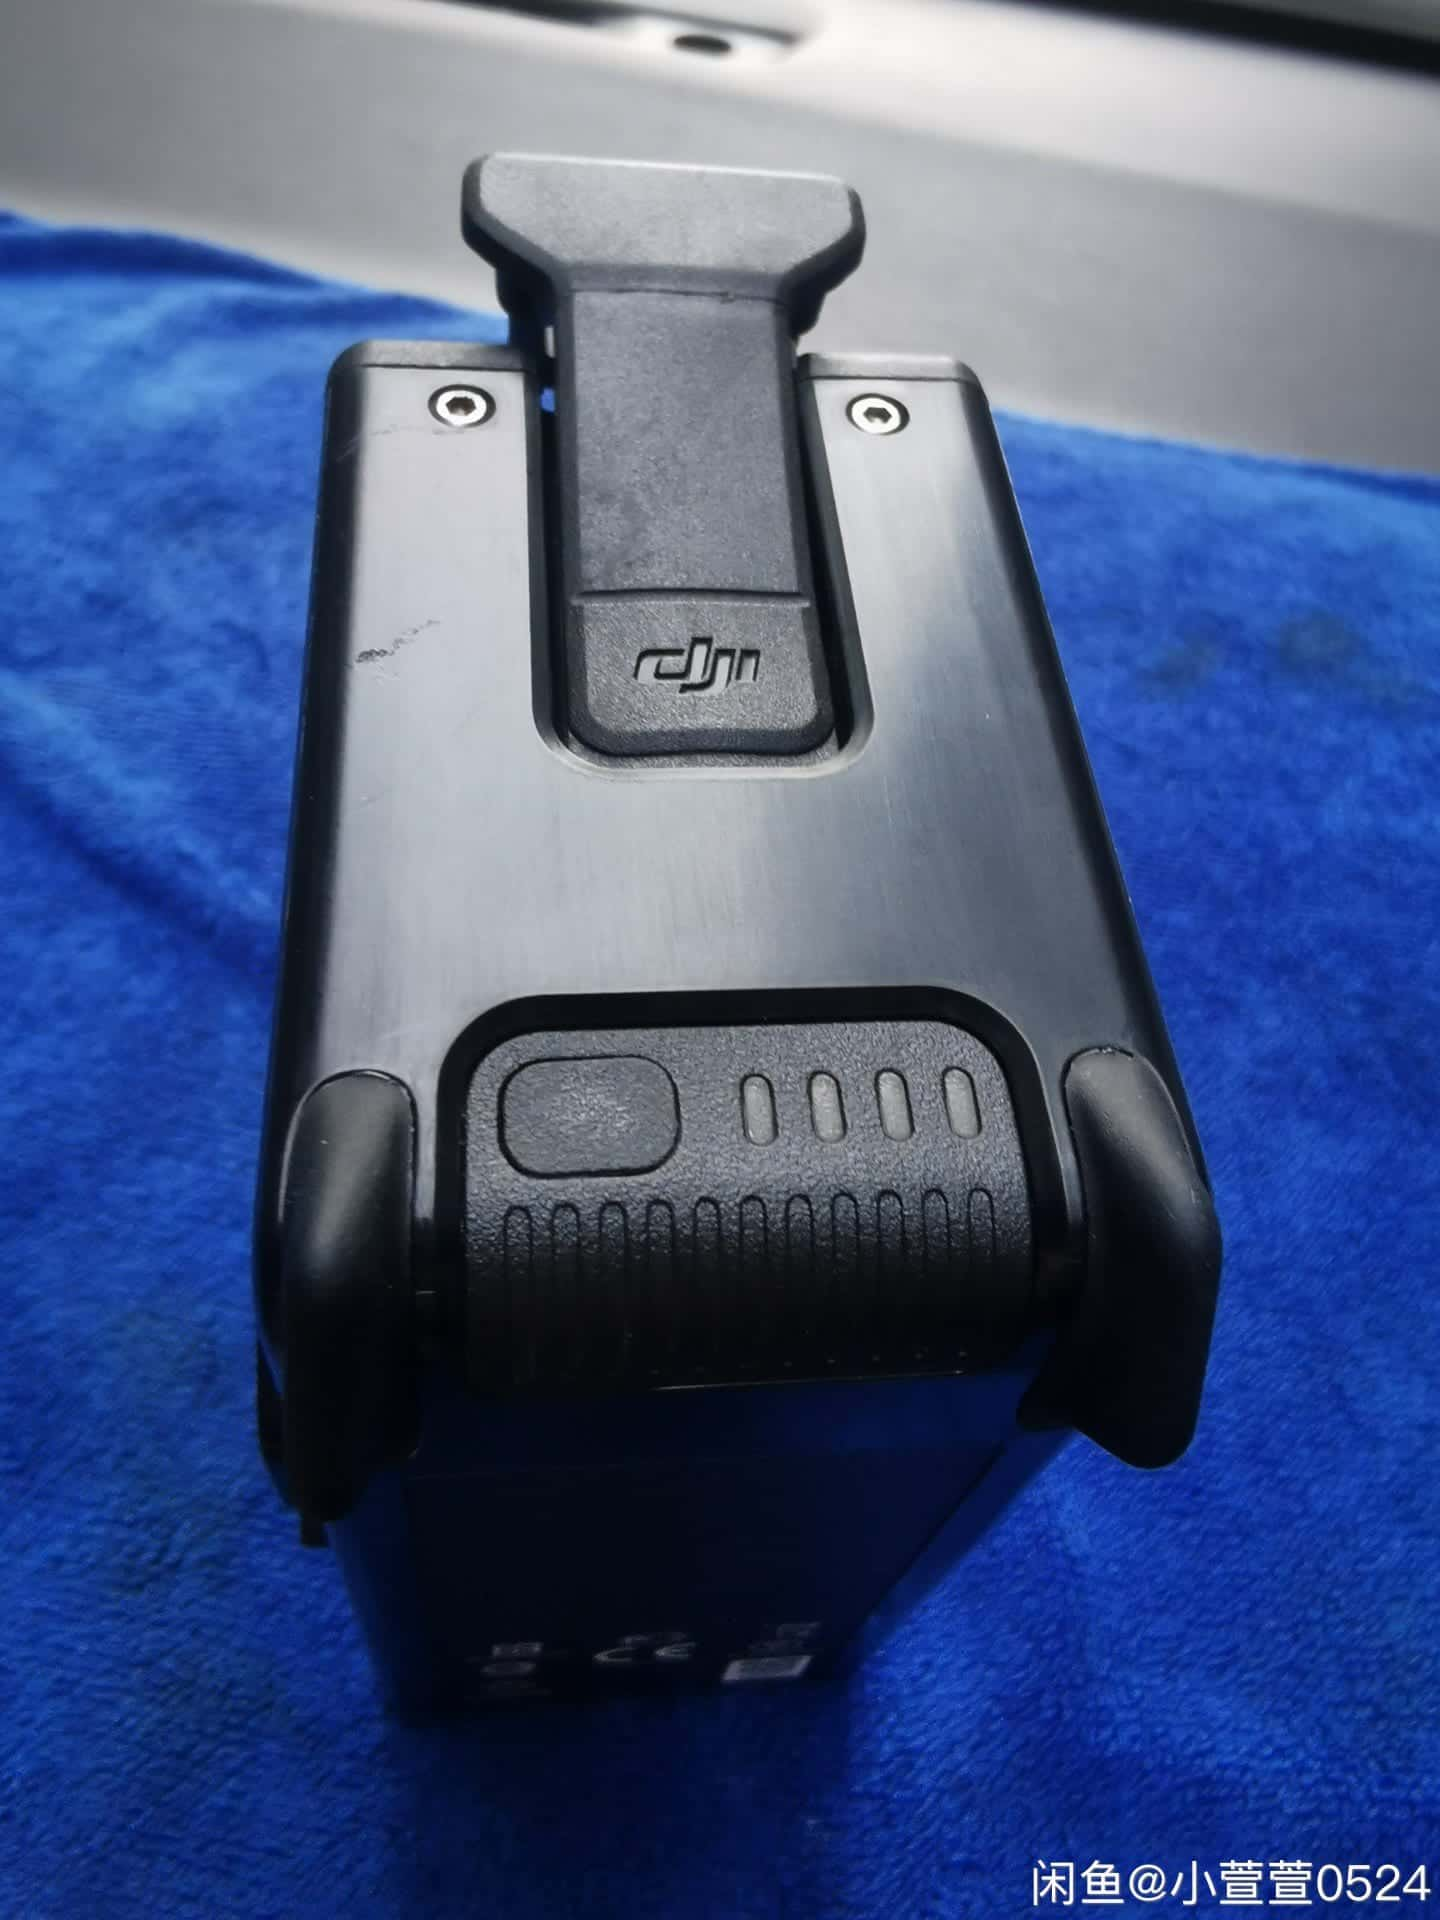 Leaked photos and video show DJI FPV drone battery in detail